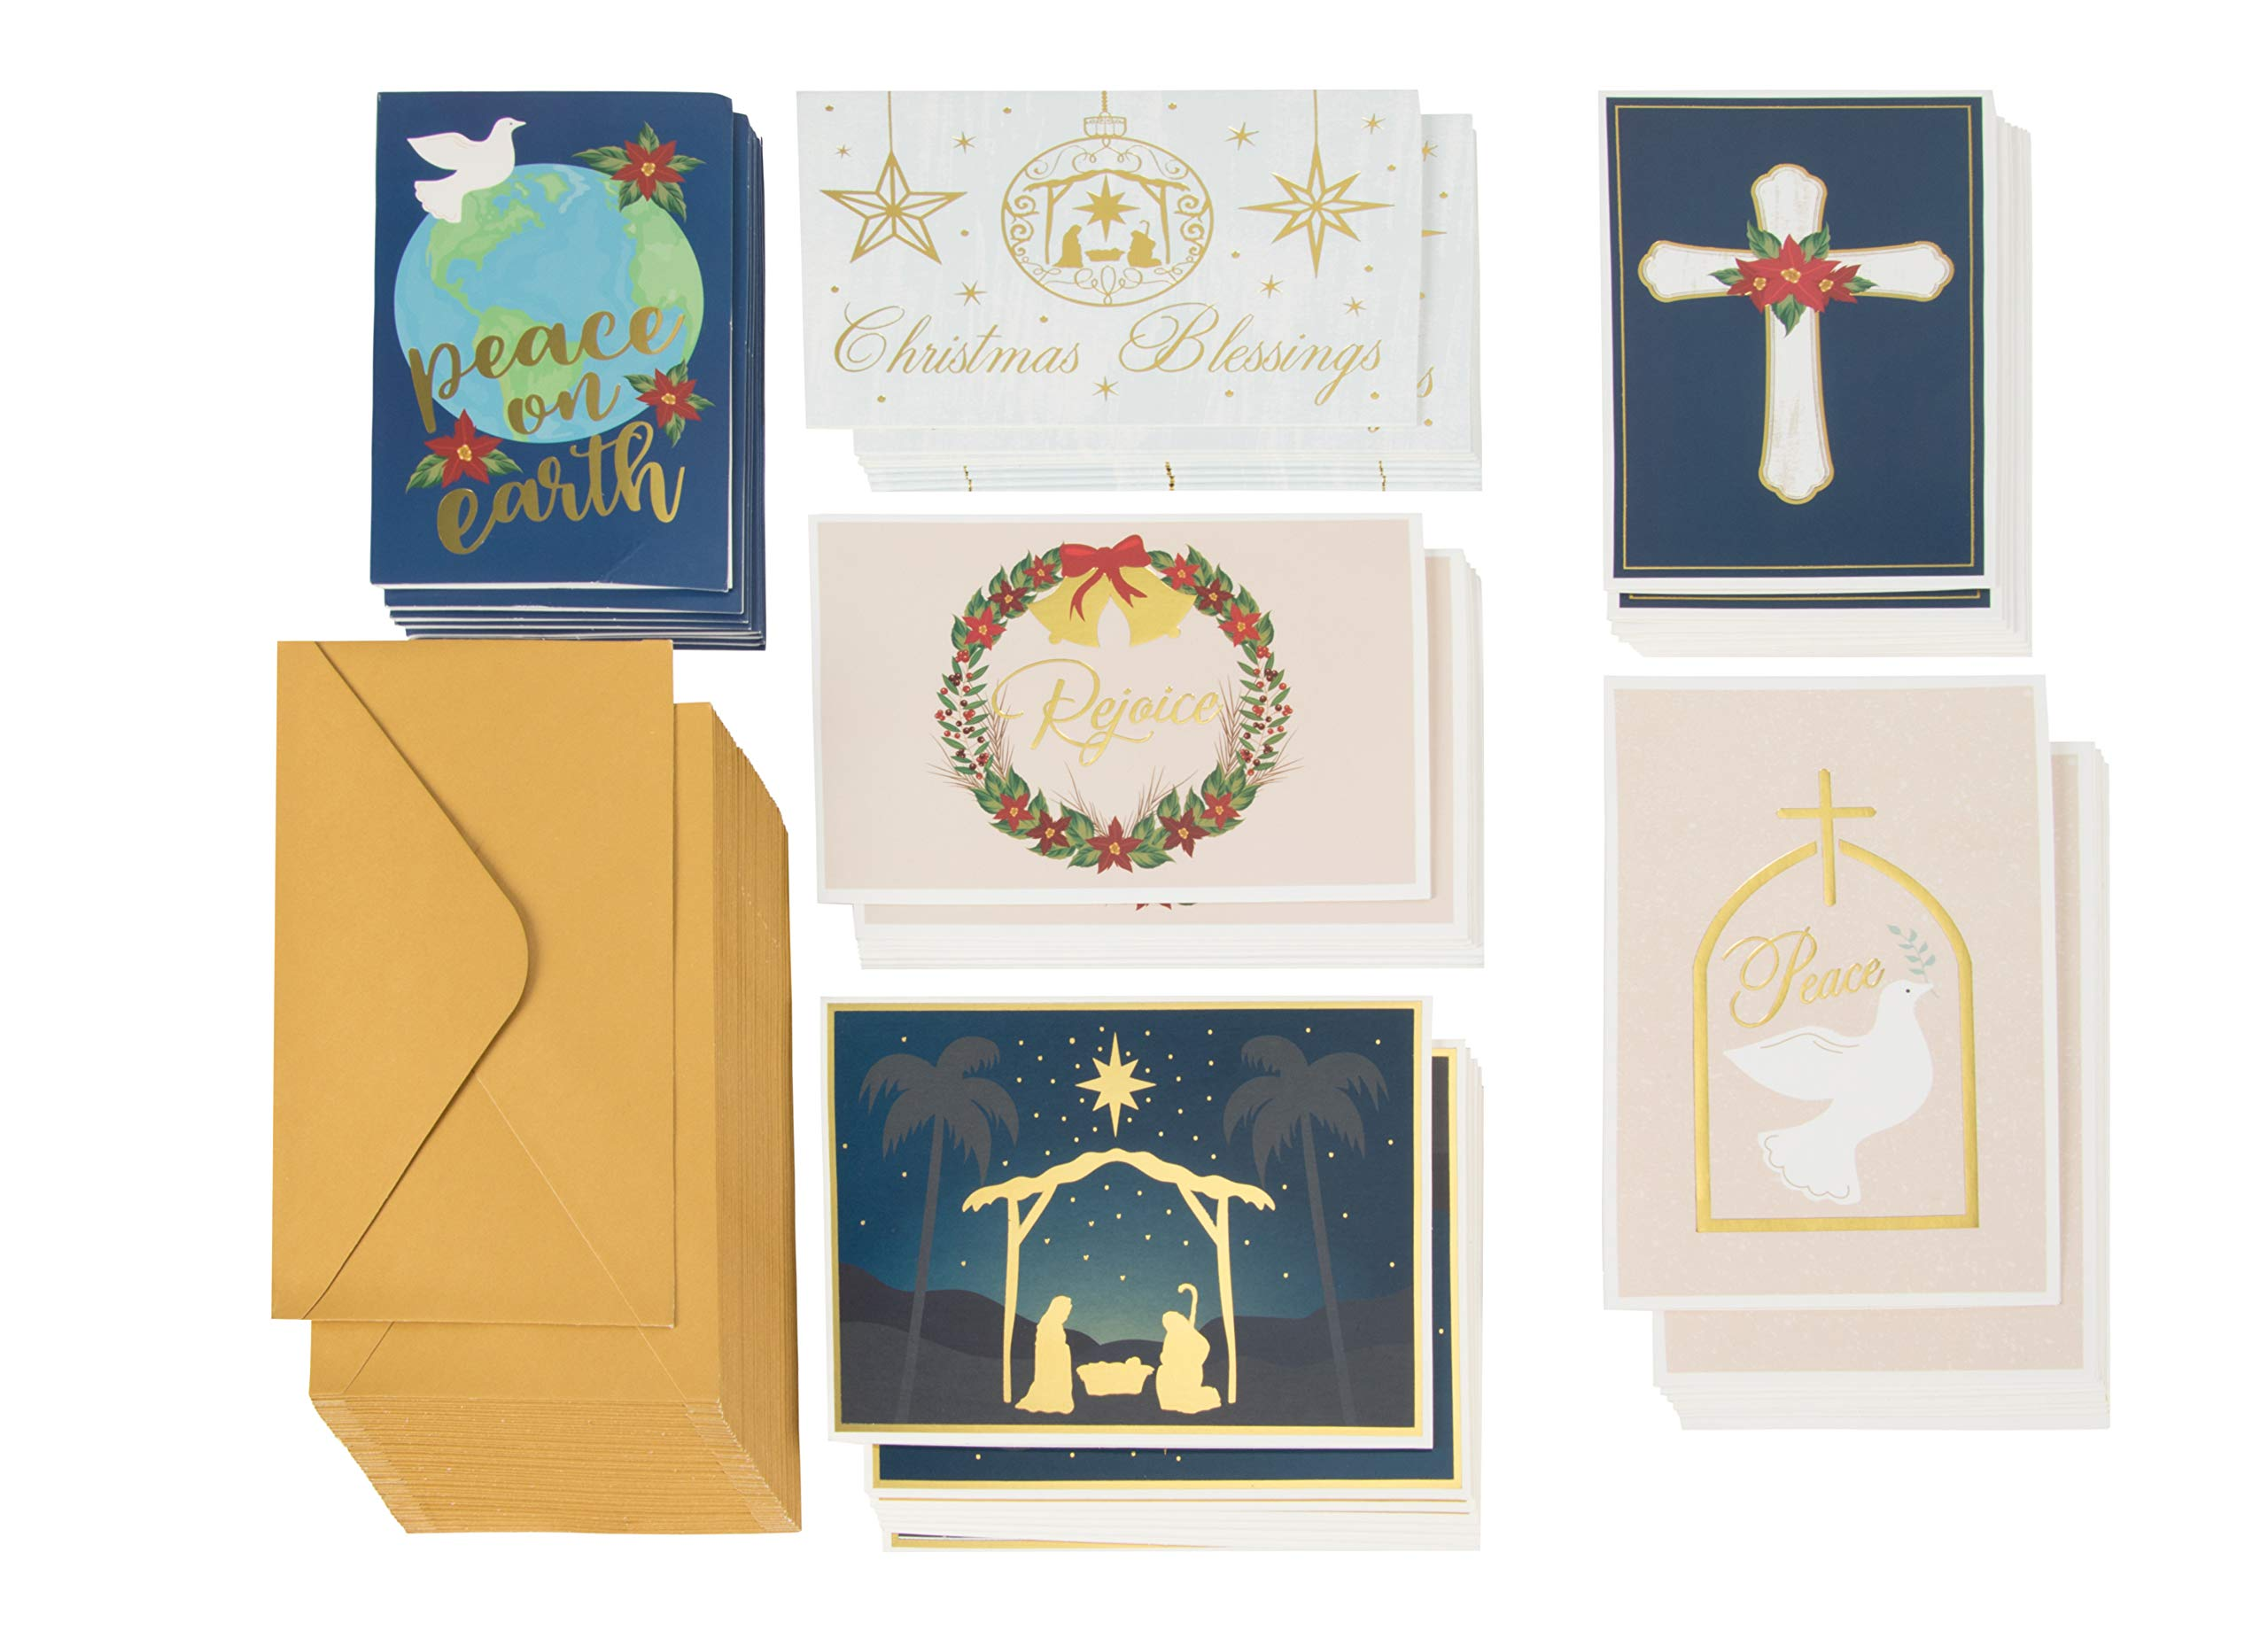 Amazon 36 Pack Merry Christmas Greeting Cards Bulk Box Set